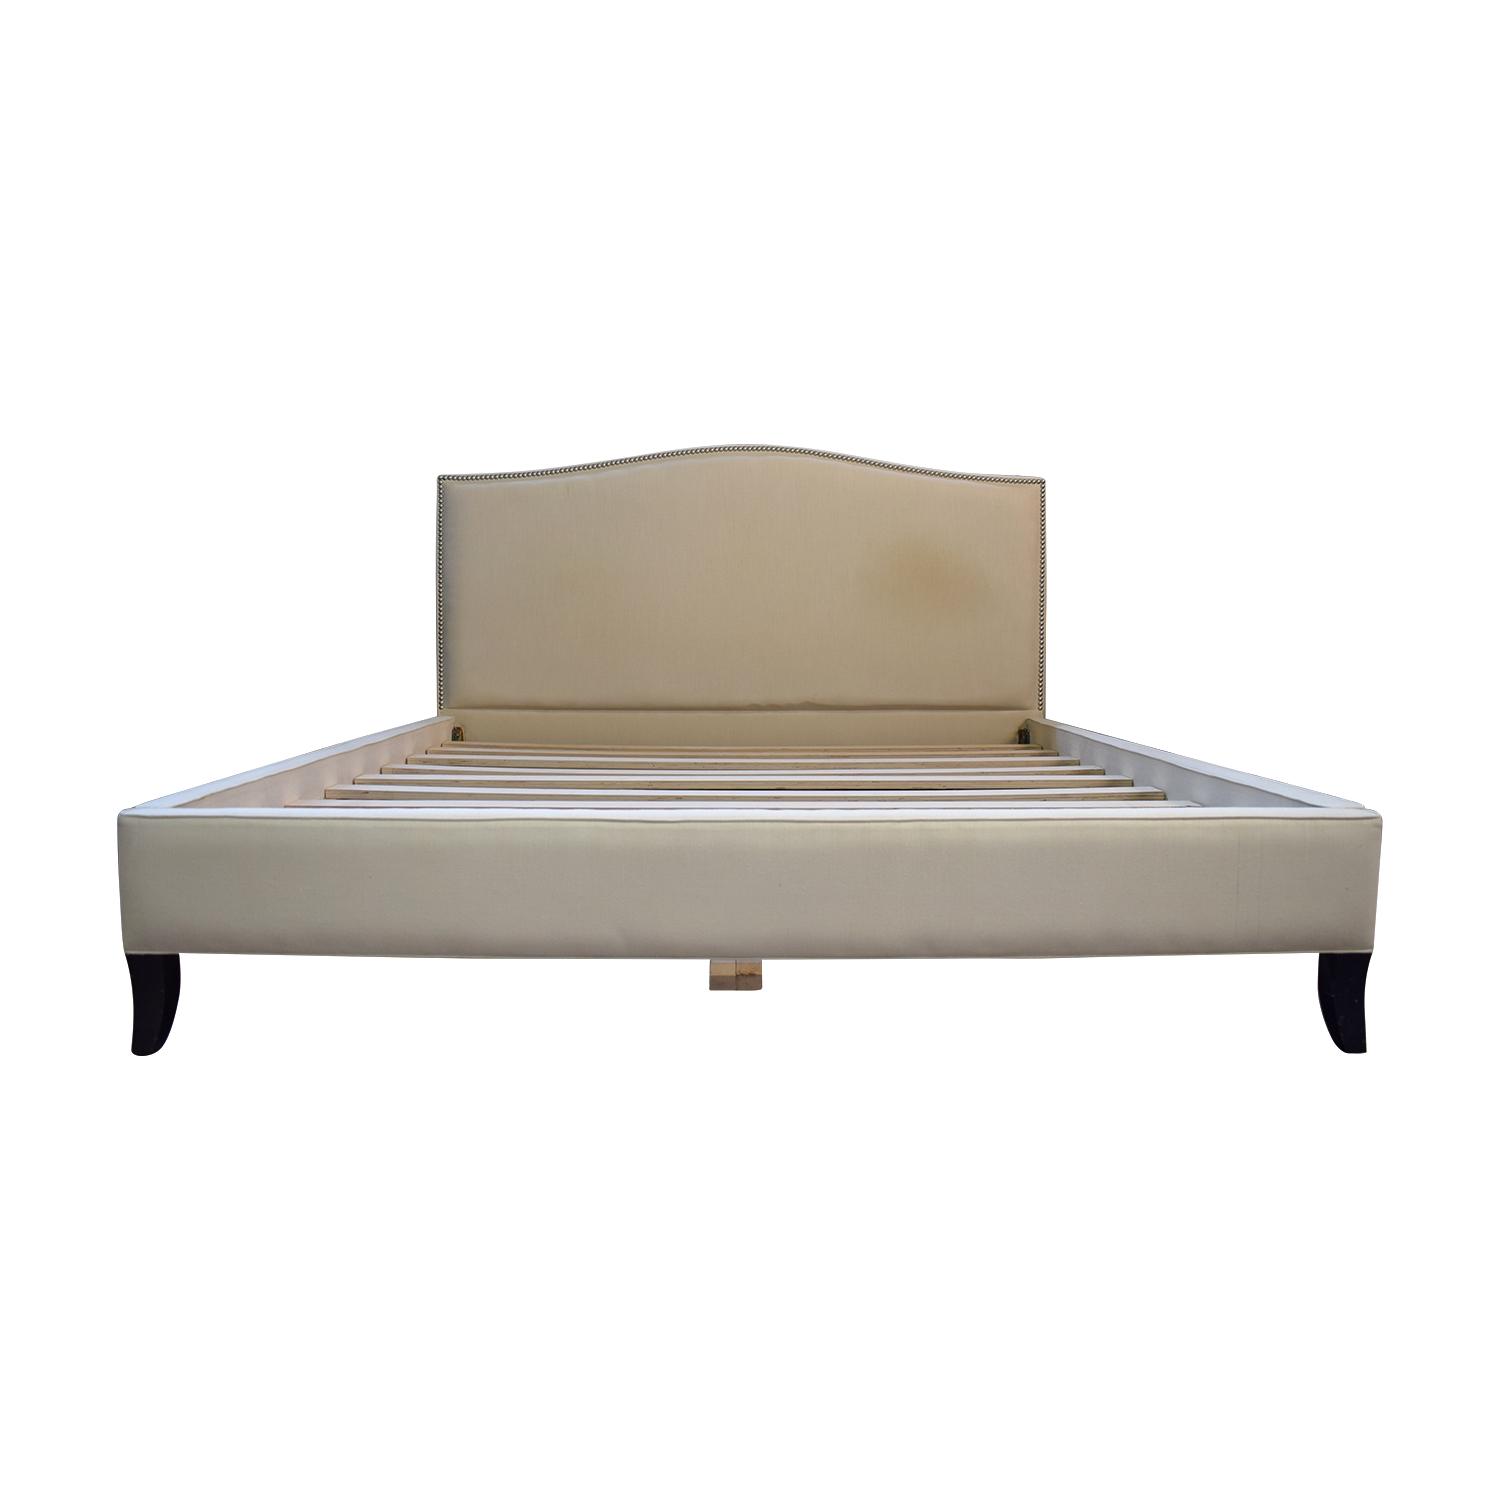 shop Crate & Barrel Crate & Barrel Beige Nailhead King Bed Frame online